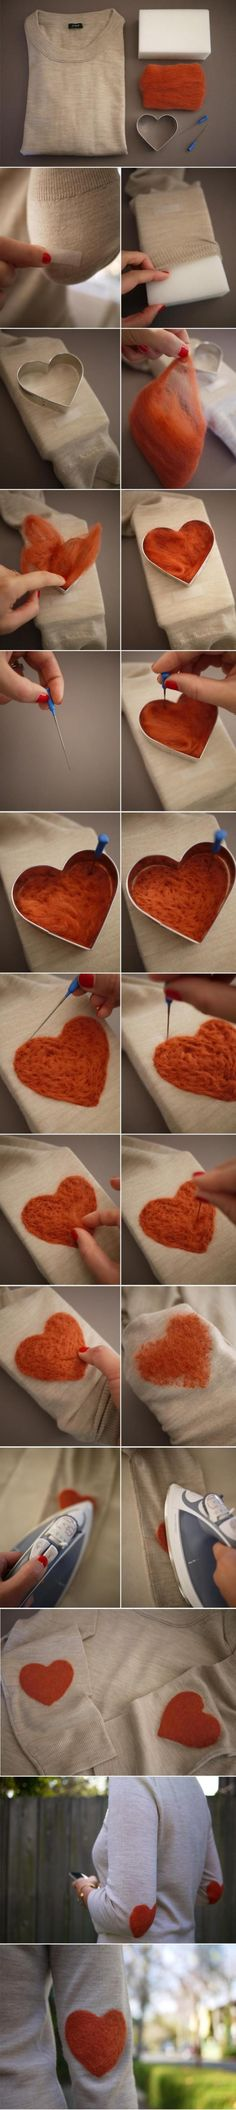 Needle-felted elbow patches. Brilliant! #DIY